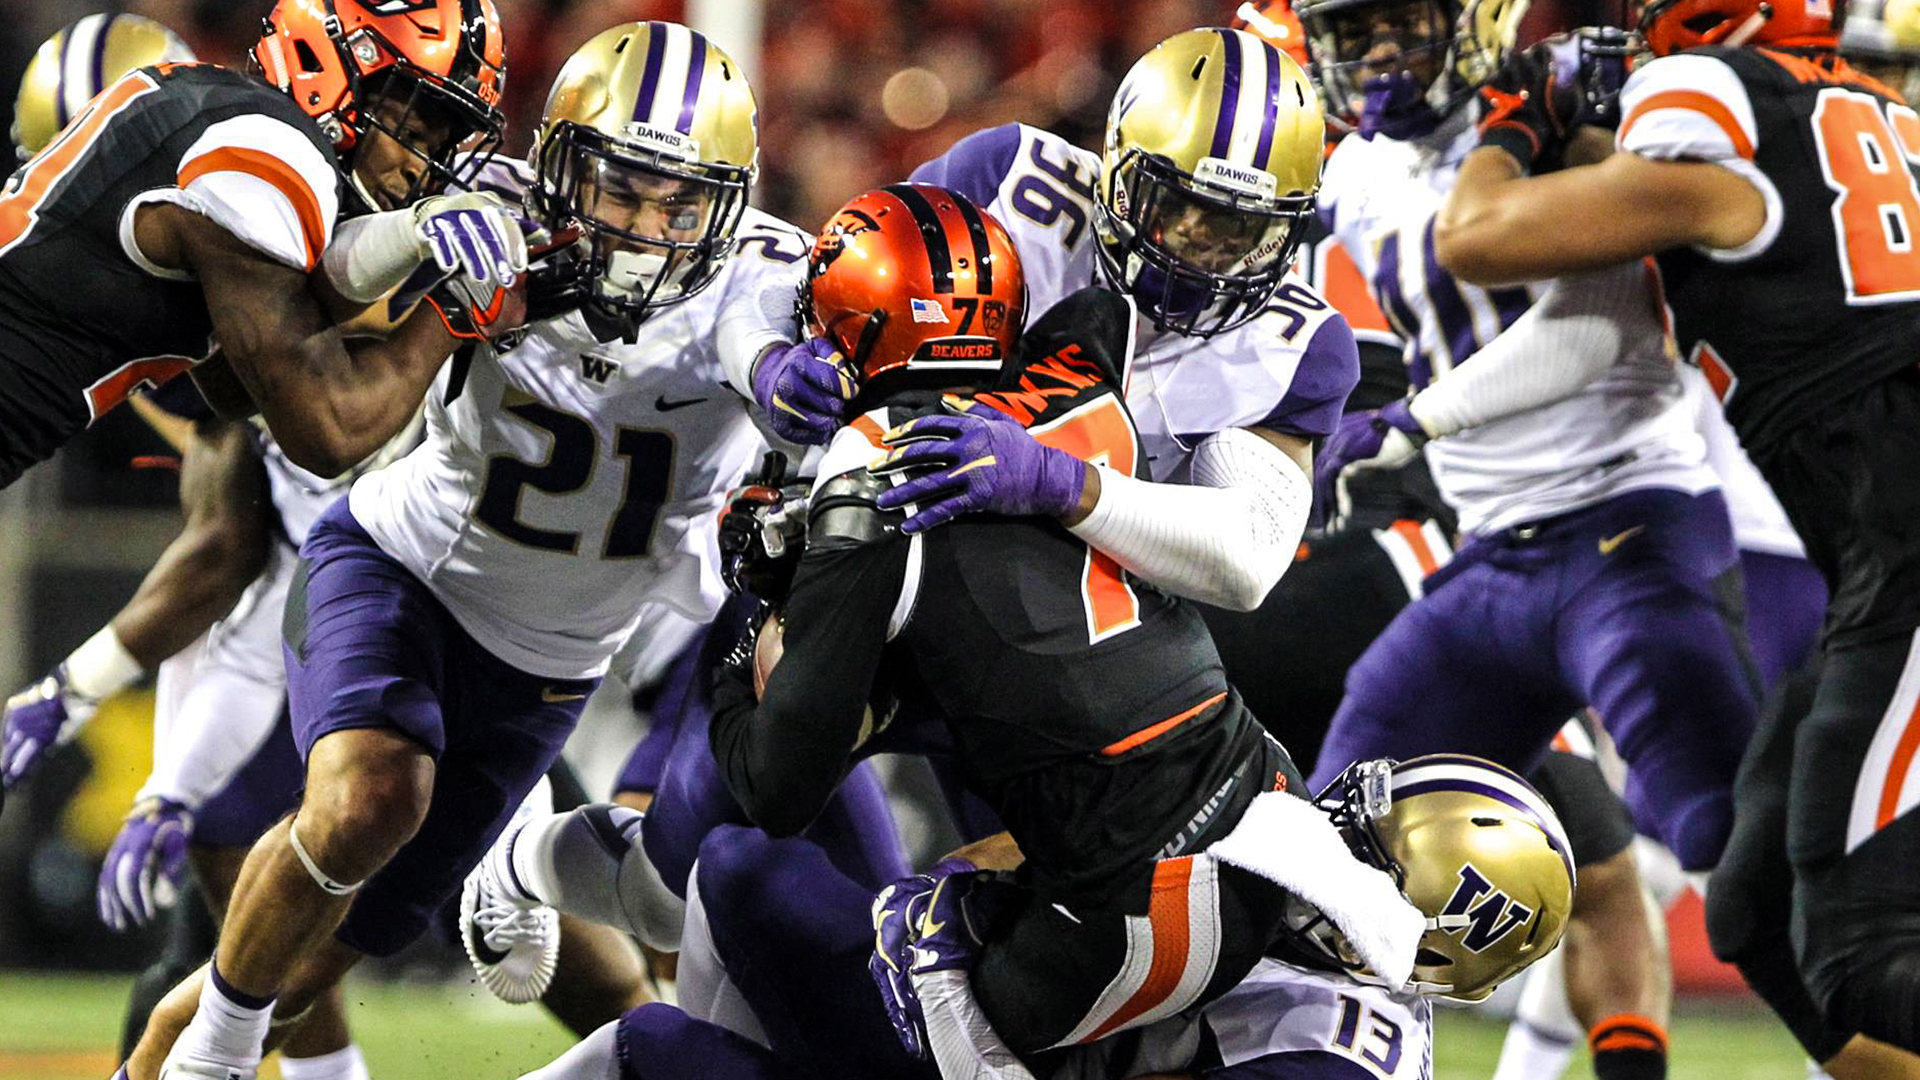 UW football has reason for optimism, concern entering Pac-12 play ...